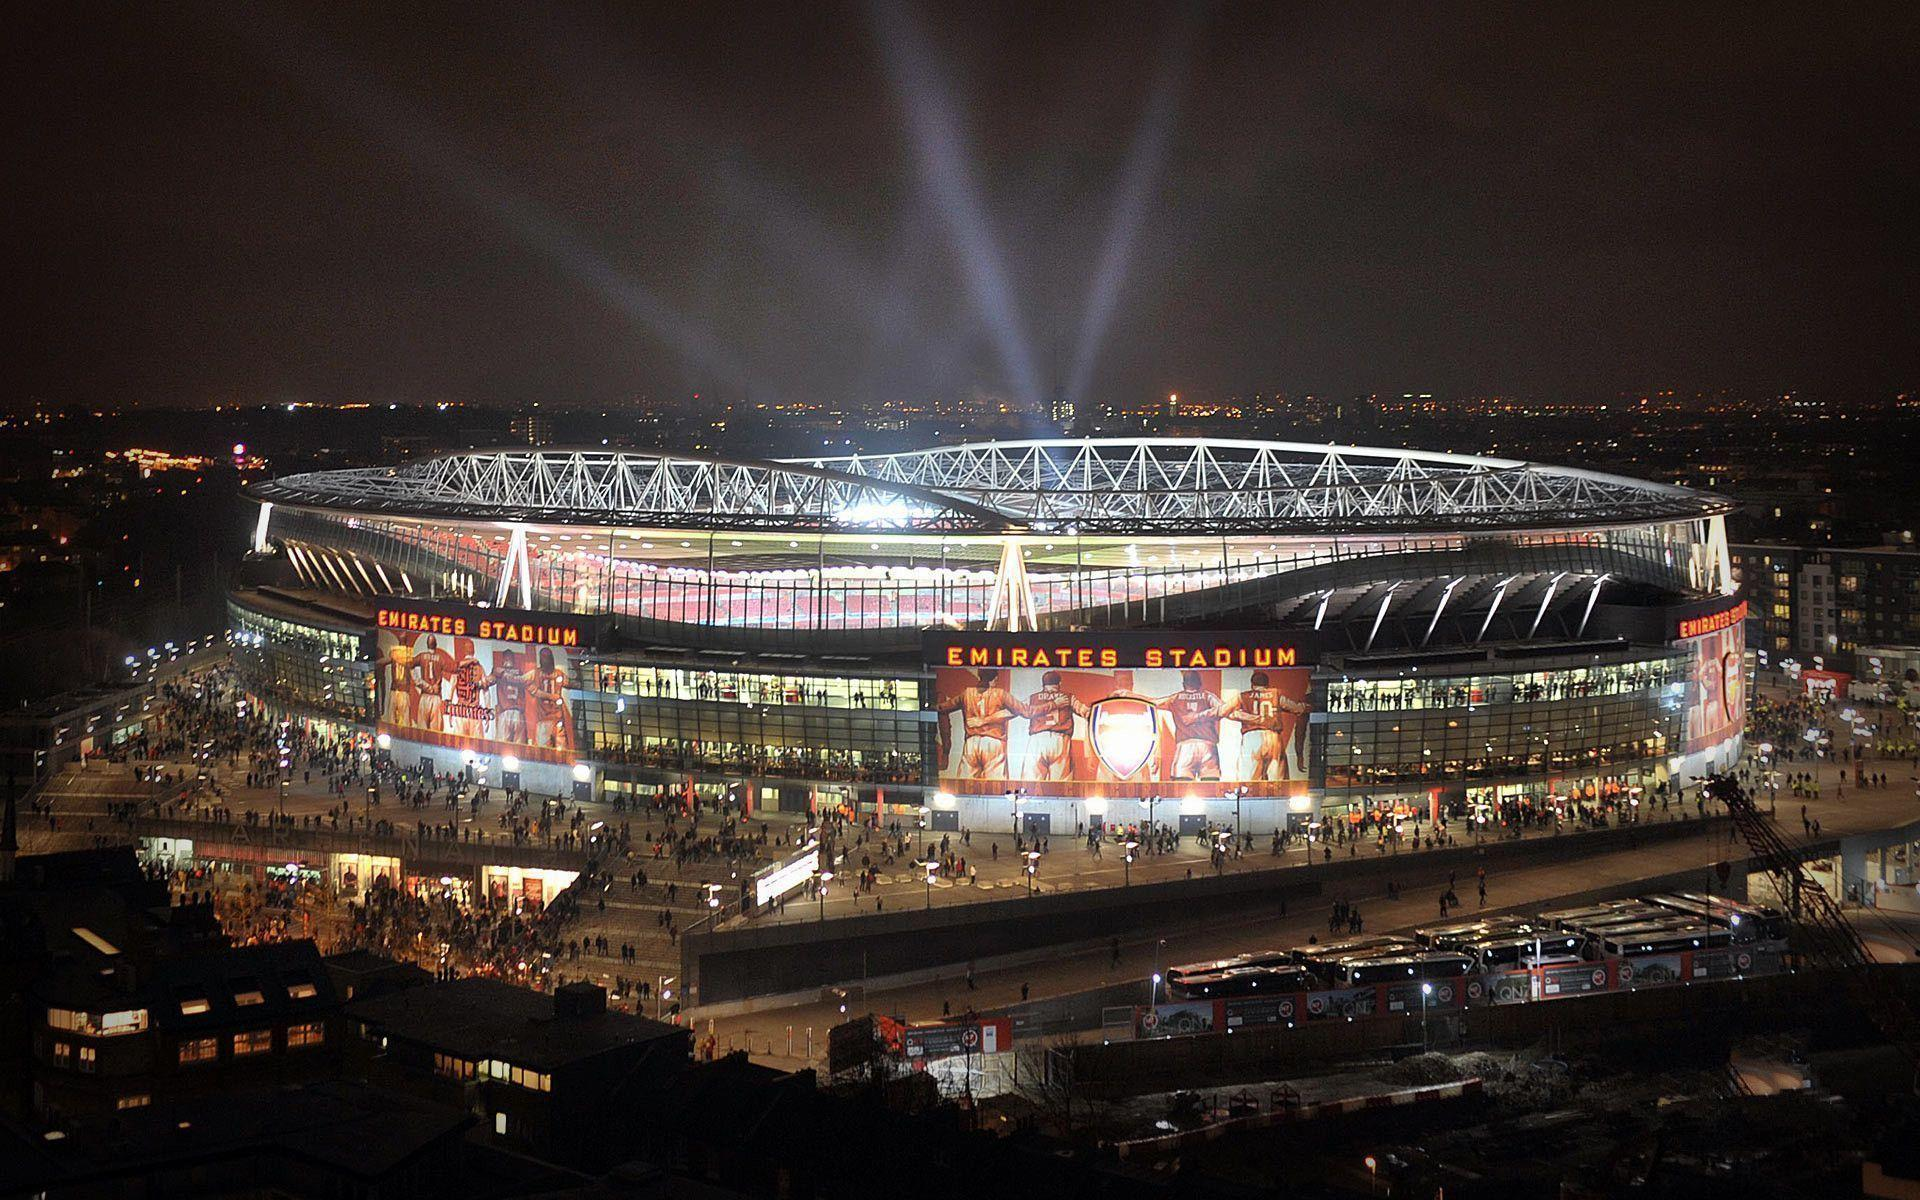 emirates stadium wallpapers top free emirates stadium backgrounds wallpaperaccess emirates stadium wallpapers top free